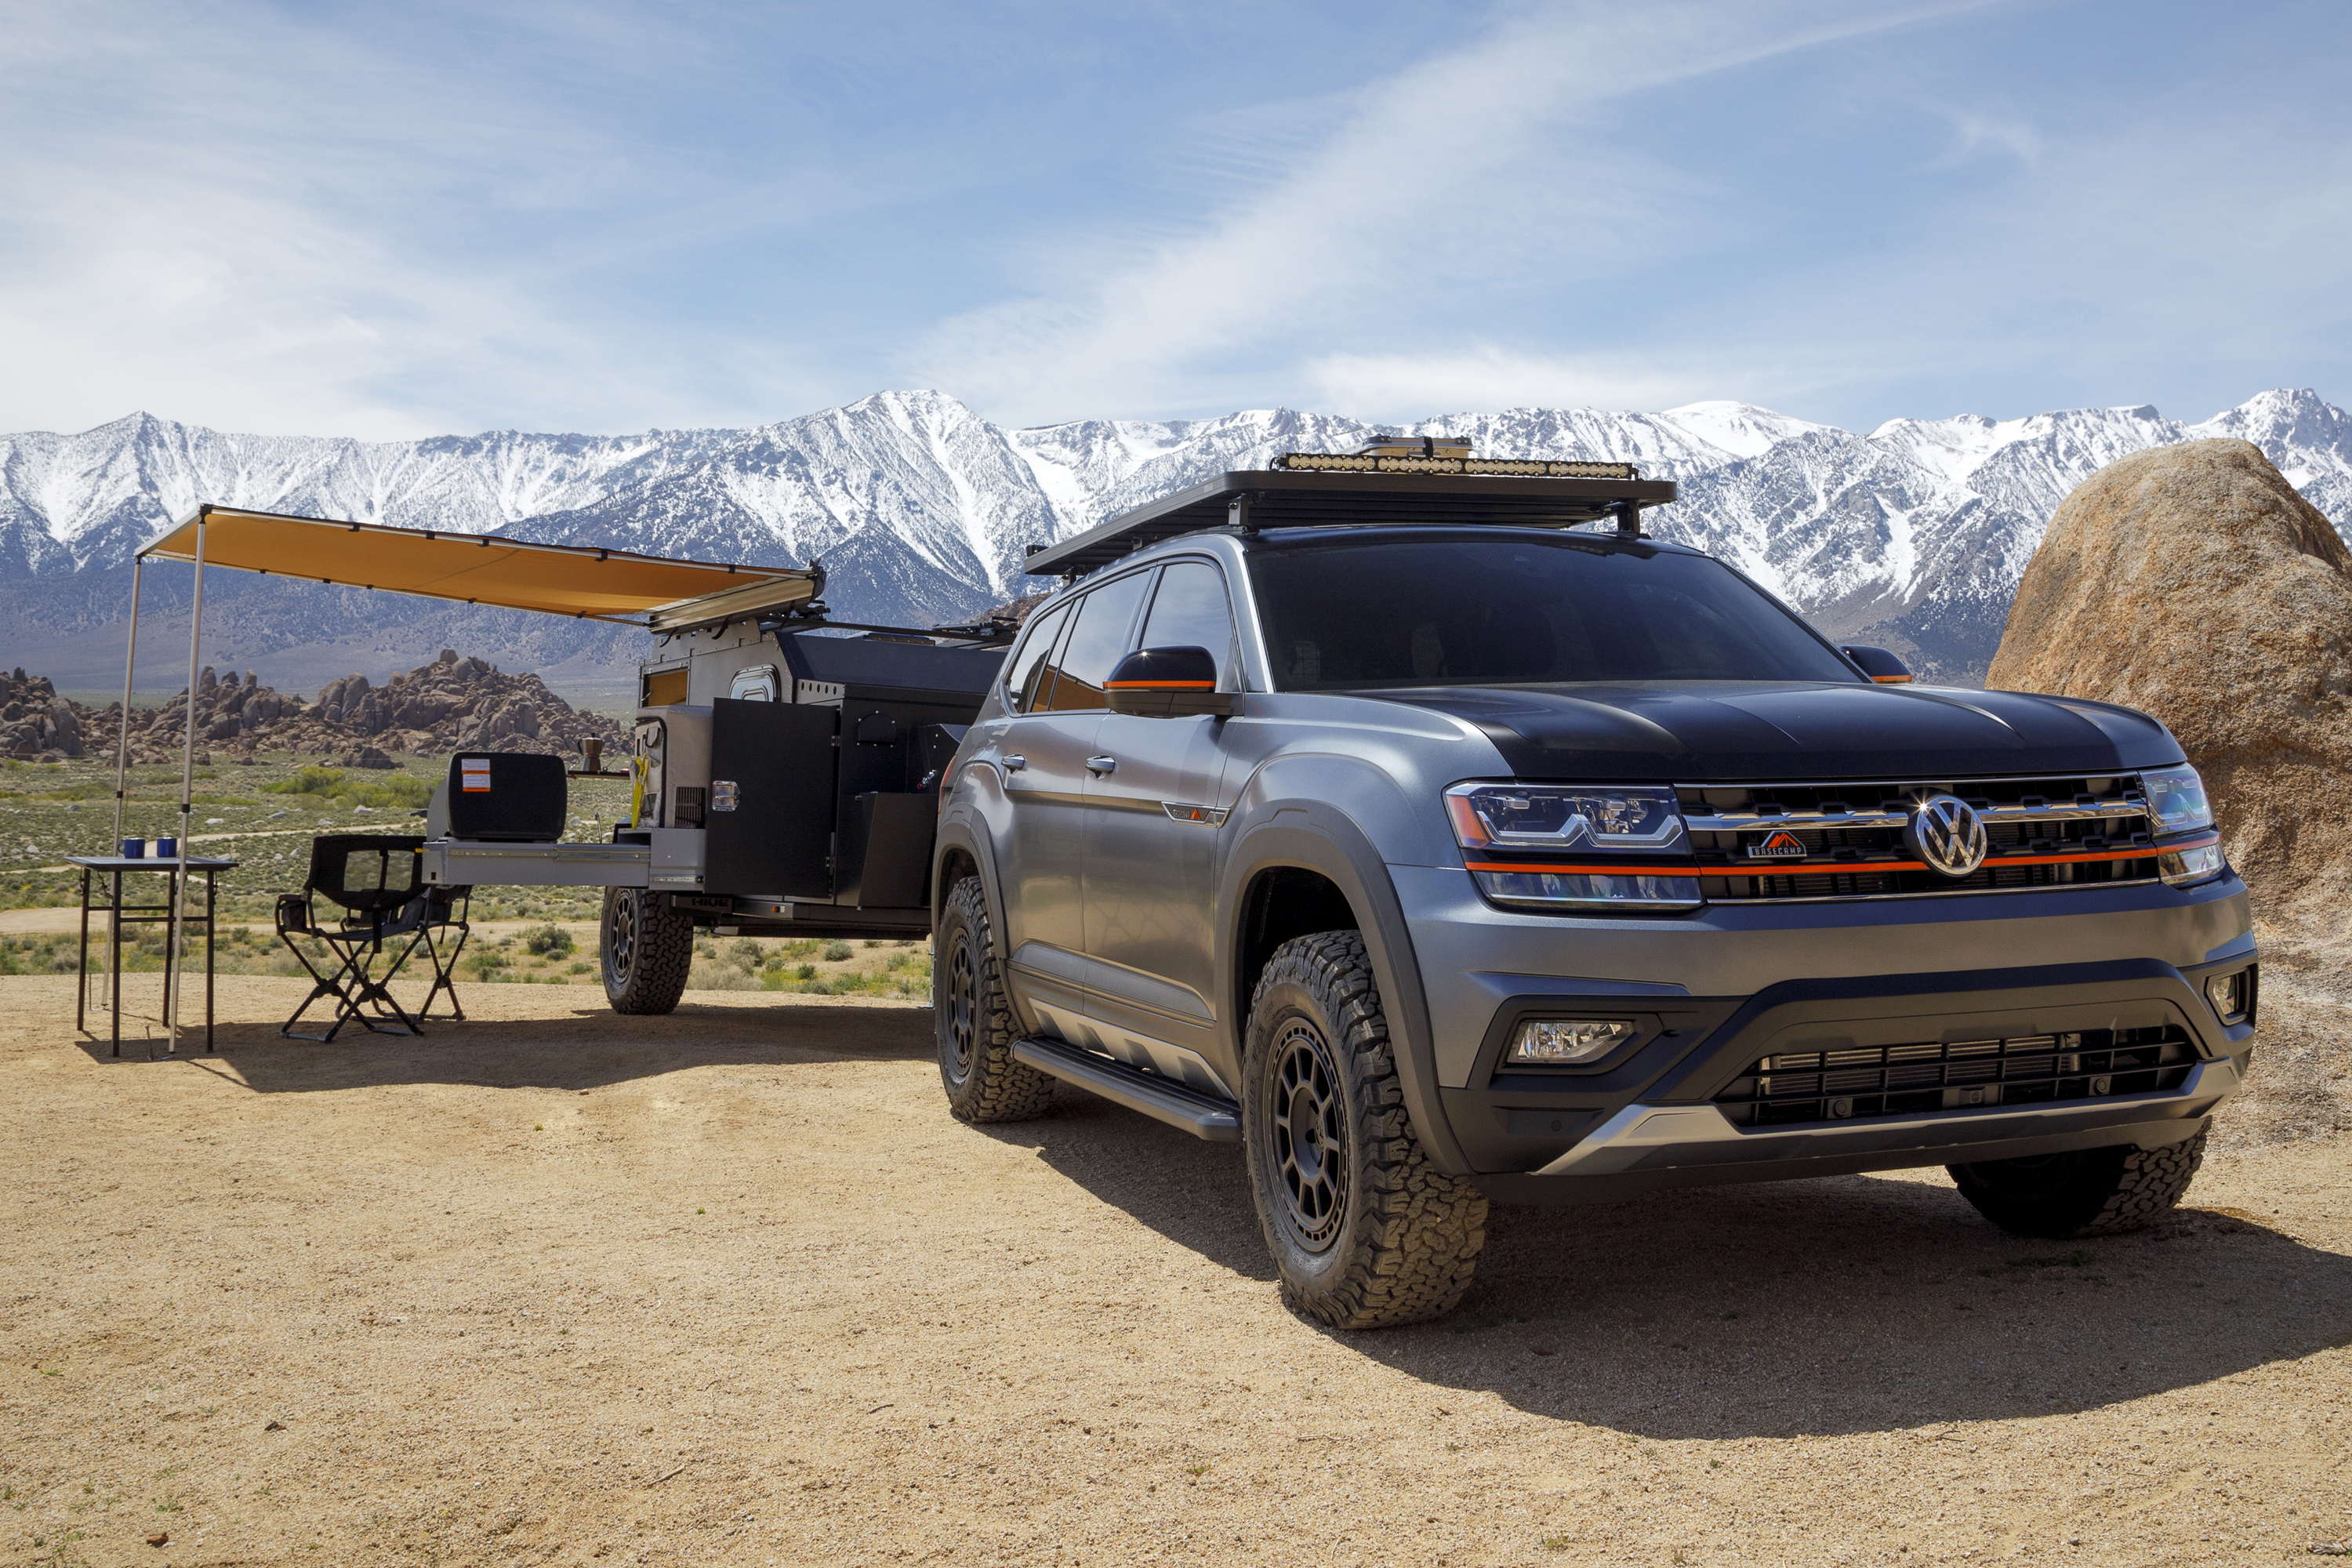 265 70R17 In Inches >> VW Atlas Basecamp Concept: The Ultimate Mountain Bike Adventure Rig? | GearJunkie